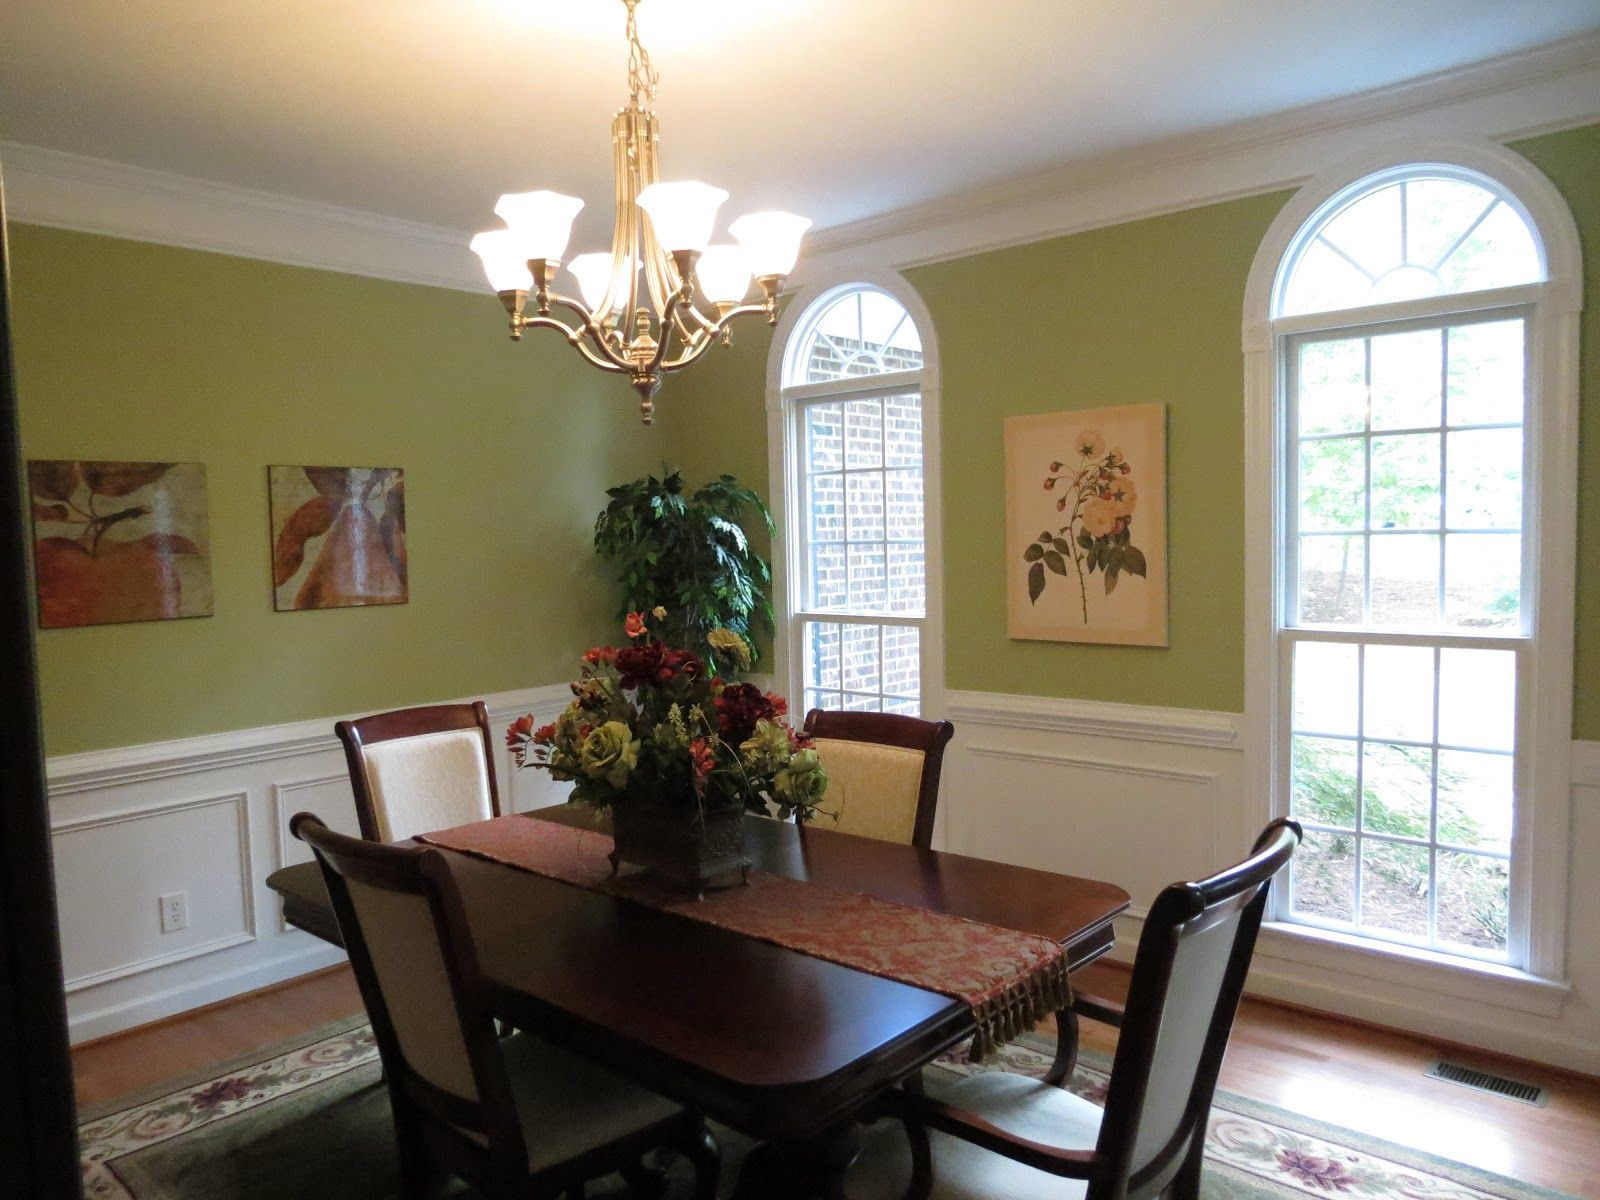 best color for dining room walls | Green and White Wall Color for Dining Room Decorating with ...